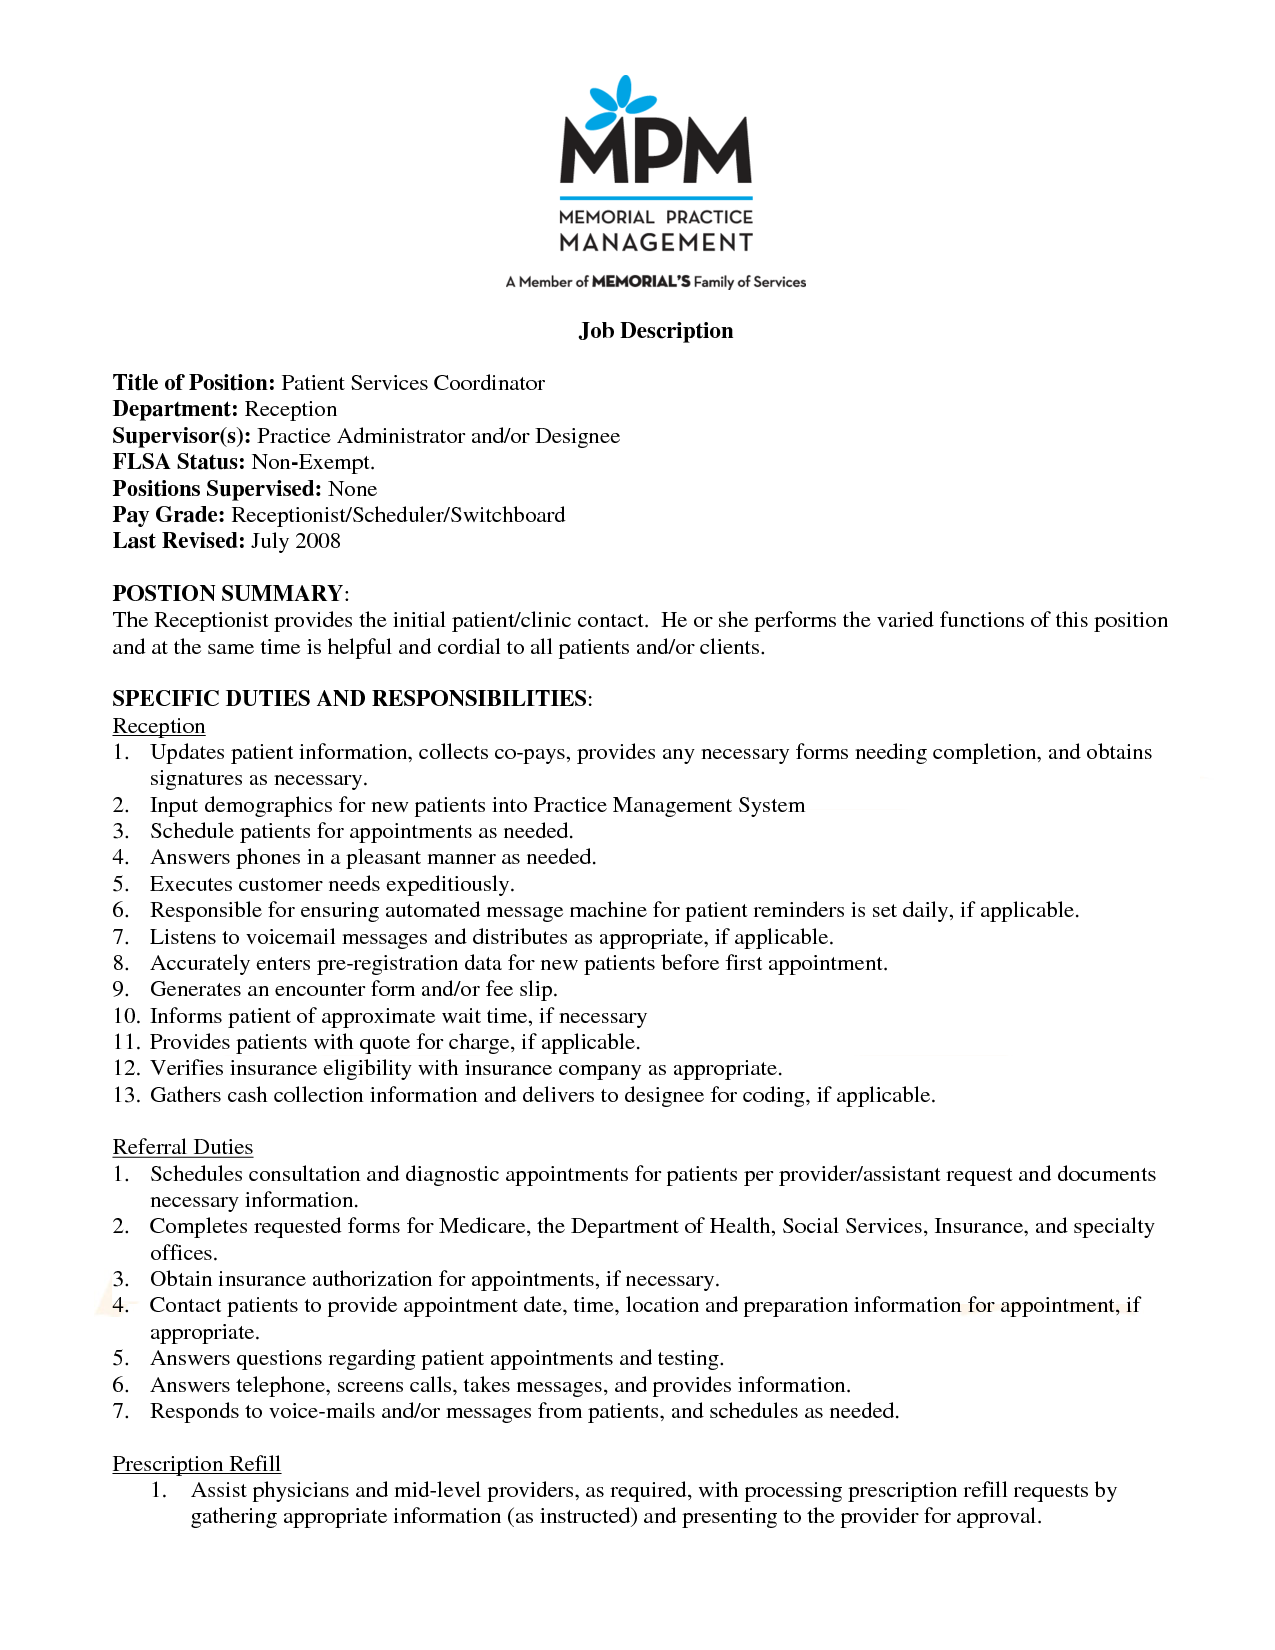 patient care coordinator resume specific duties and responsibilities